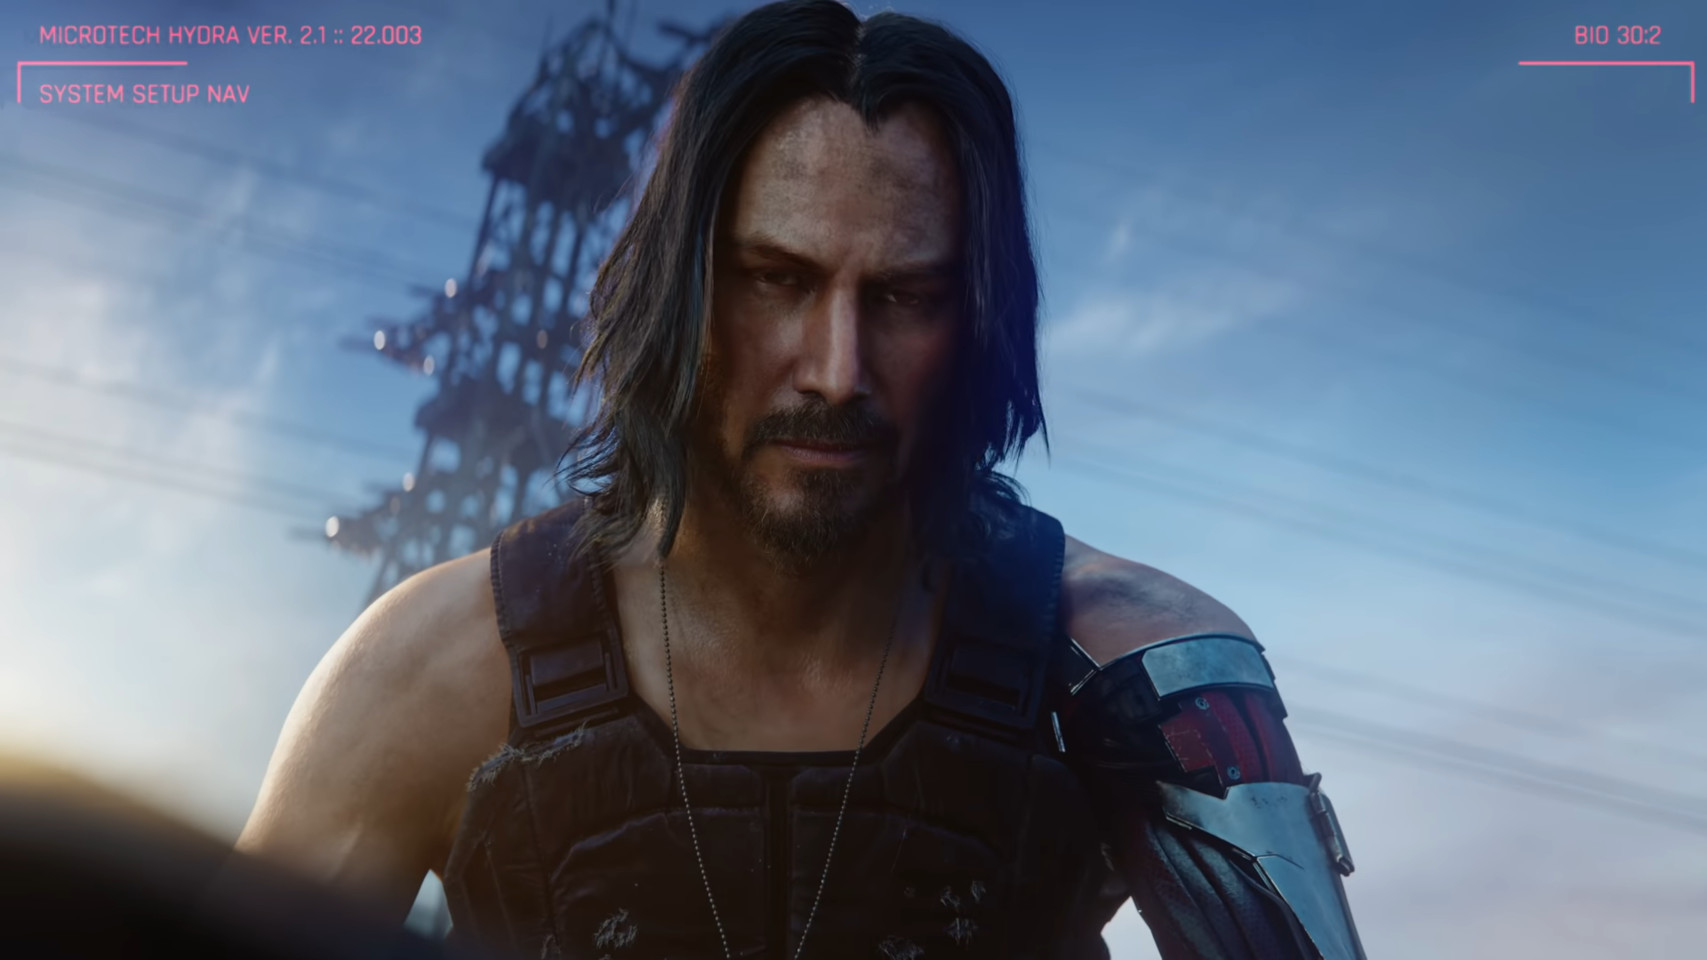 CD Projekt Red Says Cyberpunk 2077 to Have Shorter Main